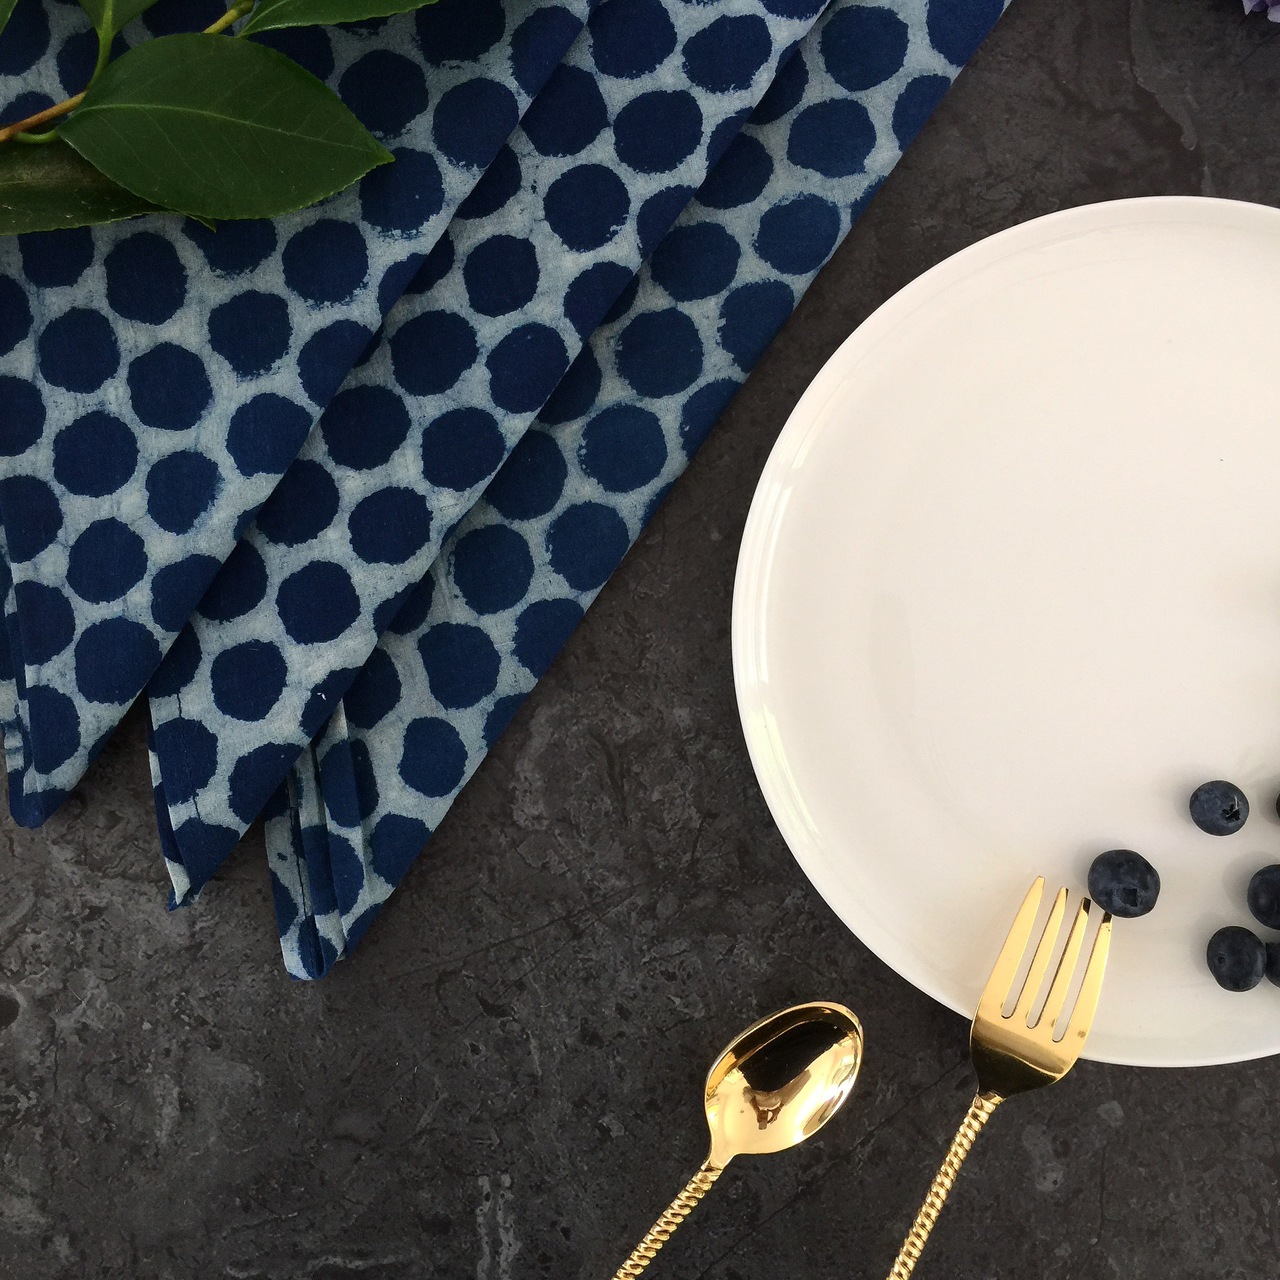 Indigo Dots Napkins -Set Of 4 by Peacocks and Paisley, a Napkins for sale on Style Sourcebook